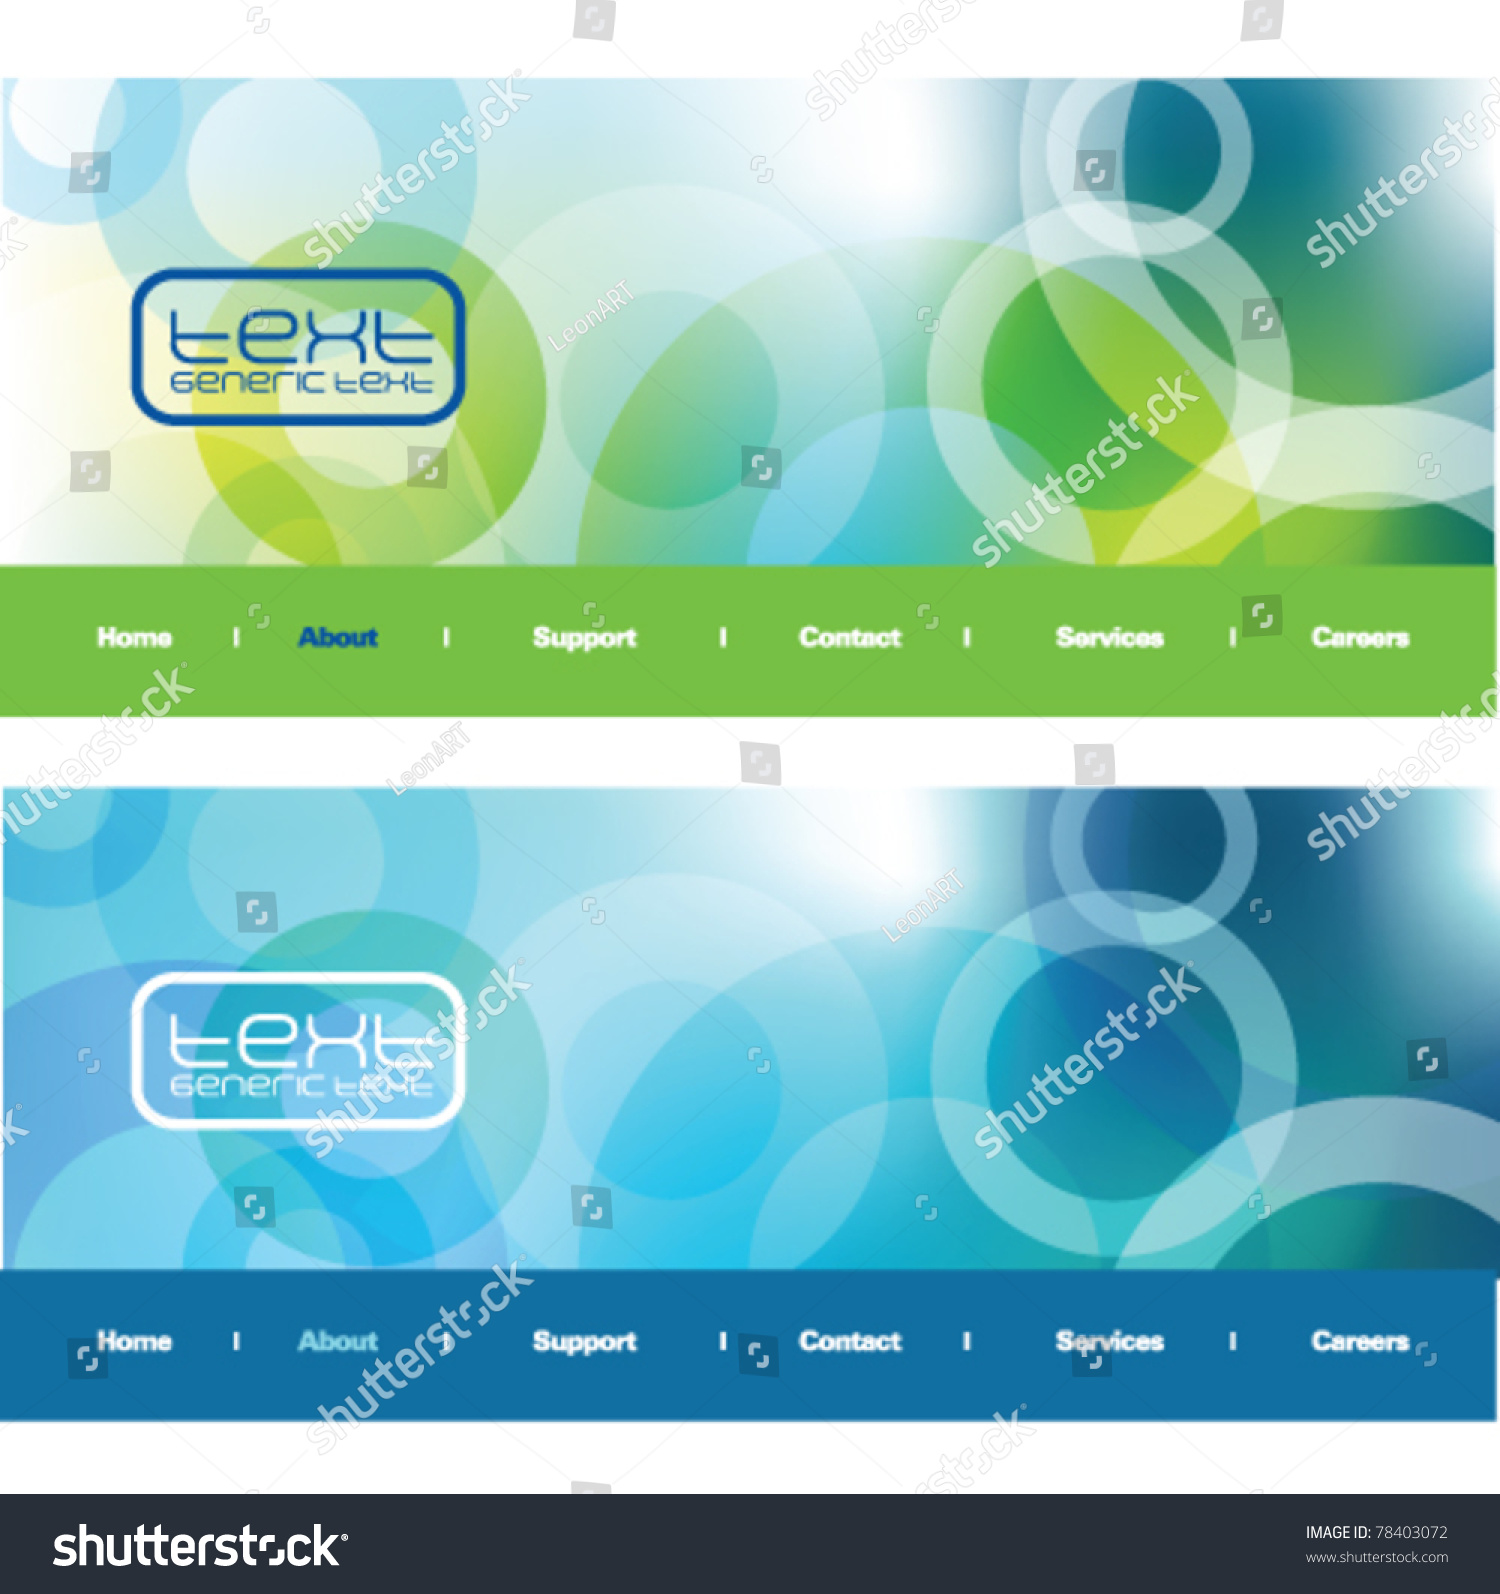 blue green abstract backgrounds trendy business stock vector 78403072 shutterstock. Black Bedroom Furniture Sets. Home Design Ideas